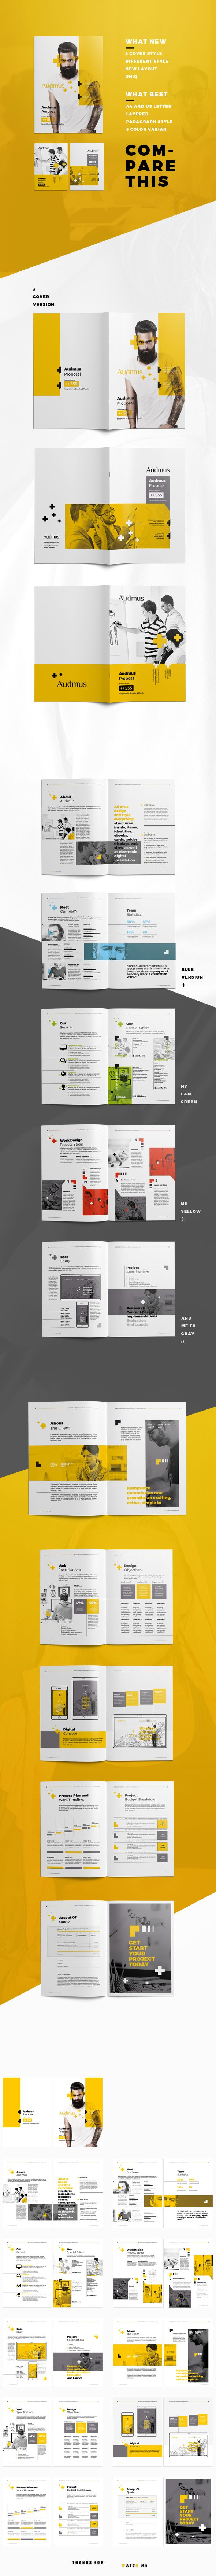 """Check out this @Behance project: """"Proposal"""" https://www.behance.net/gallery/34386451/Proposal"""